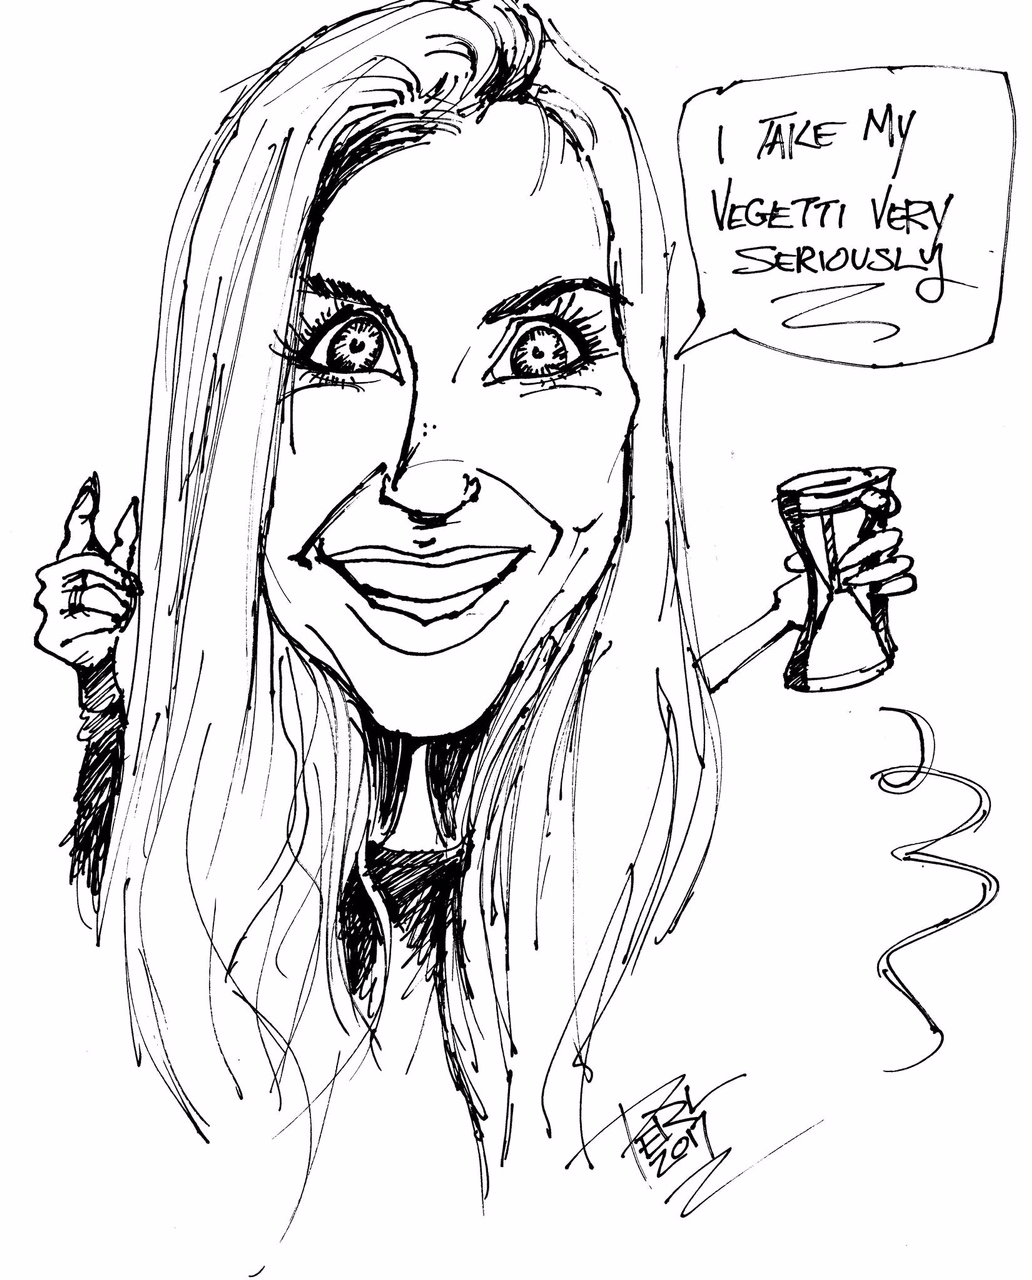 Thanks for this super fun caricature, William Perlman! (Friend of  Abbie Live !)